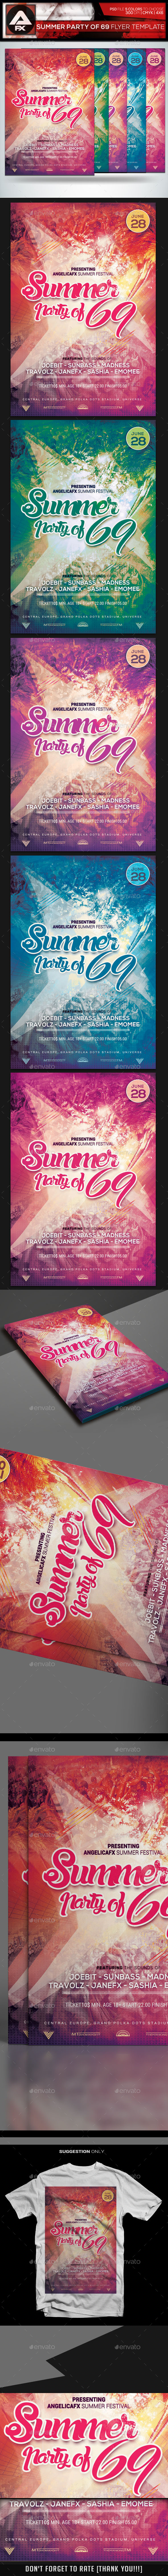 GraphicRiver Summer Party of 69 11465761